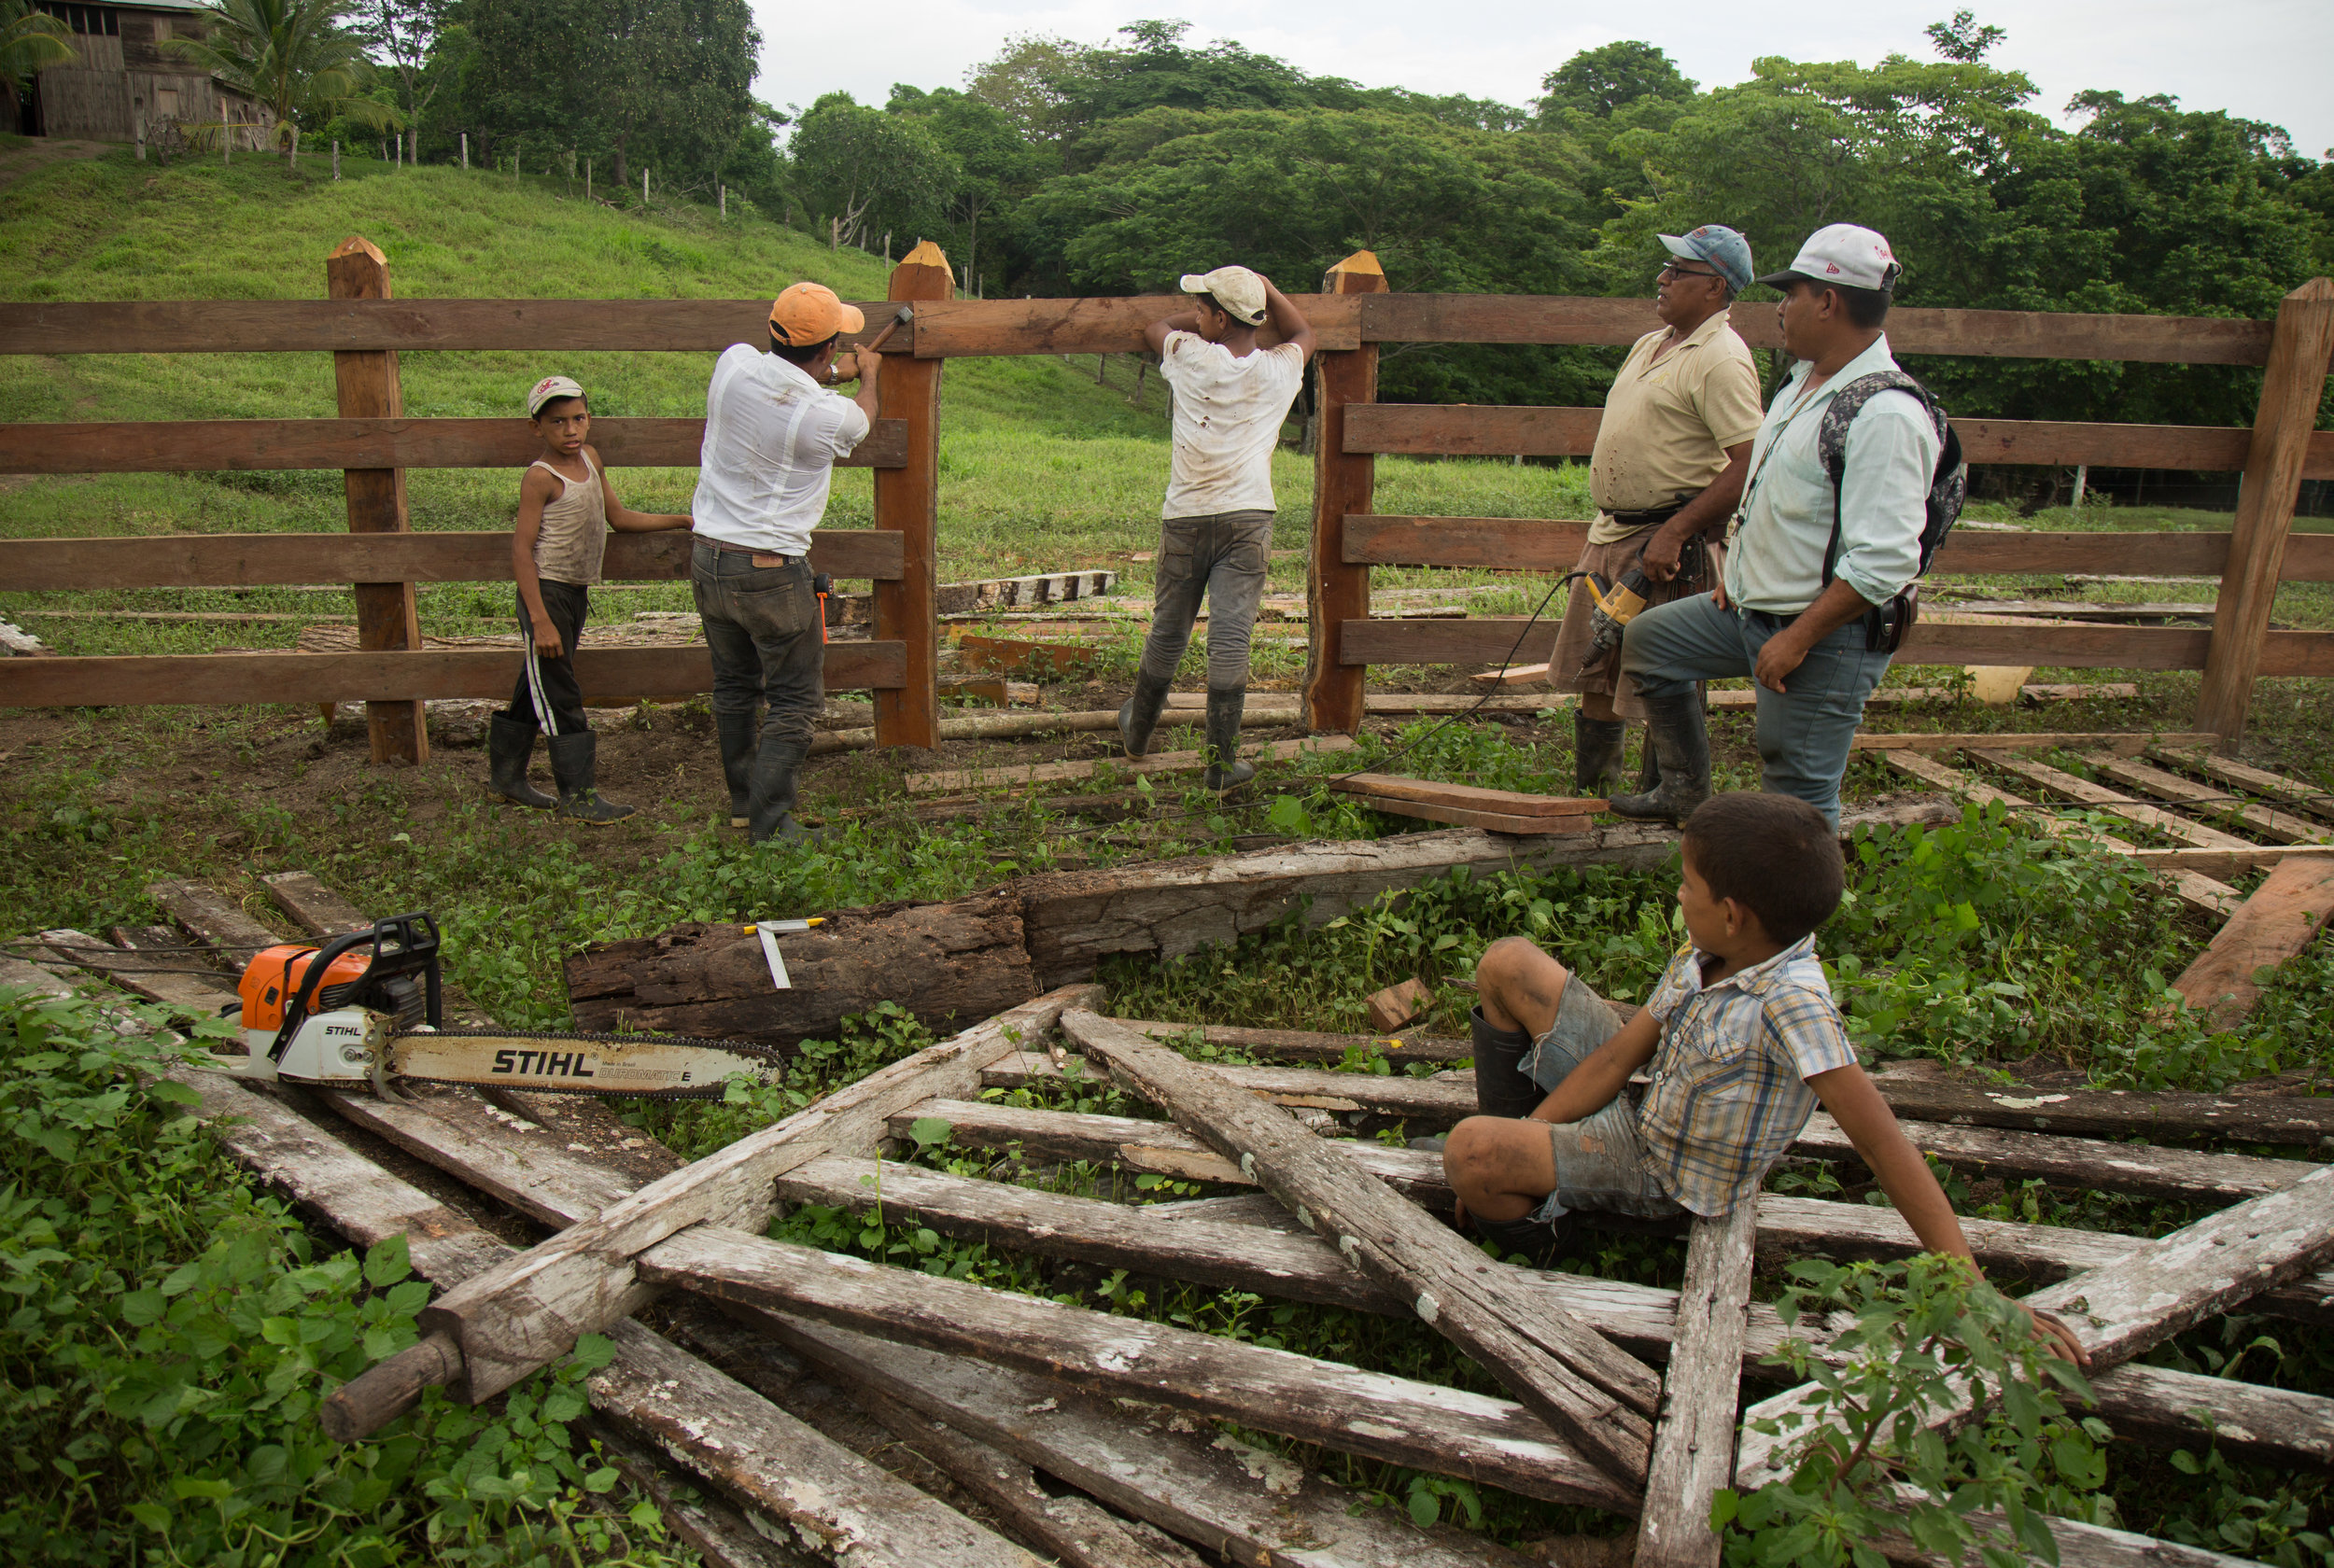 Manuel Aviles working on his farm with his sons. On December 24, 2015 while participating in an anti canal protest in El Tule, he was arrested and taken to El Chipote prison in Managua, where he was beaten by police. Taken in El Jicaro, RAAS, Nicaragua. June 12, 2016.